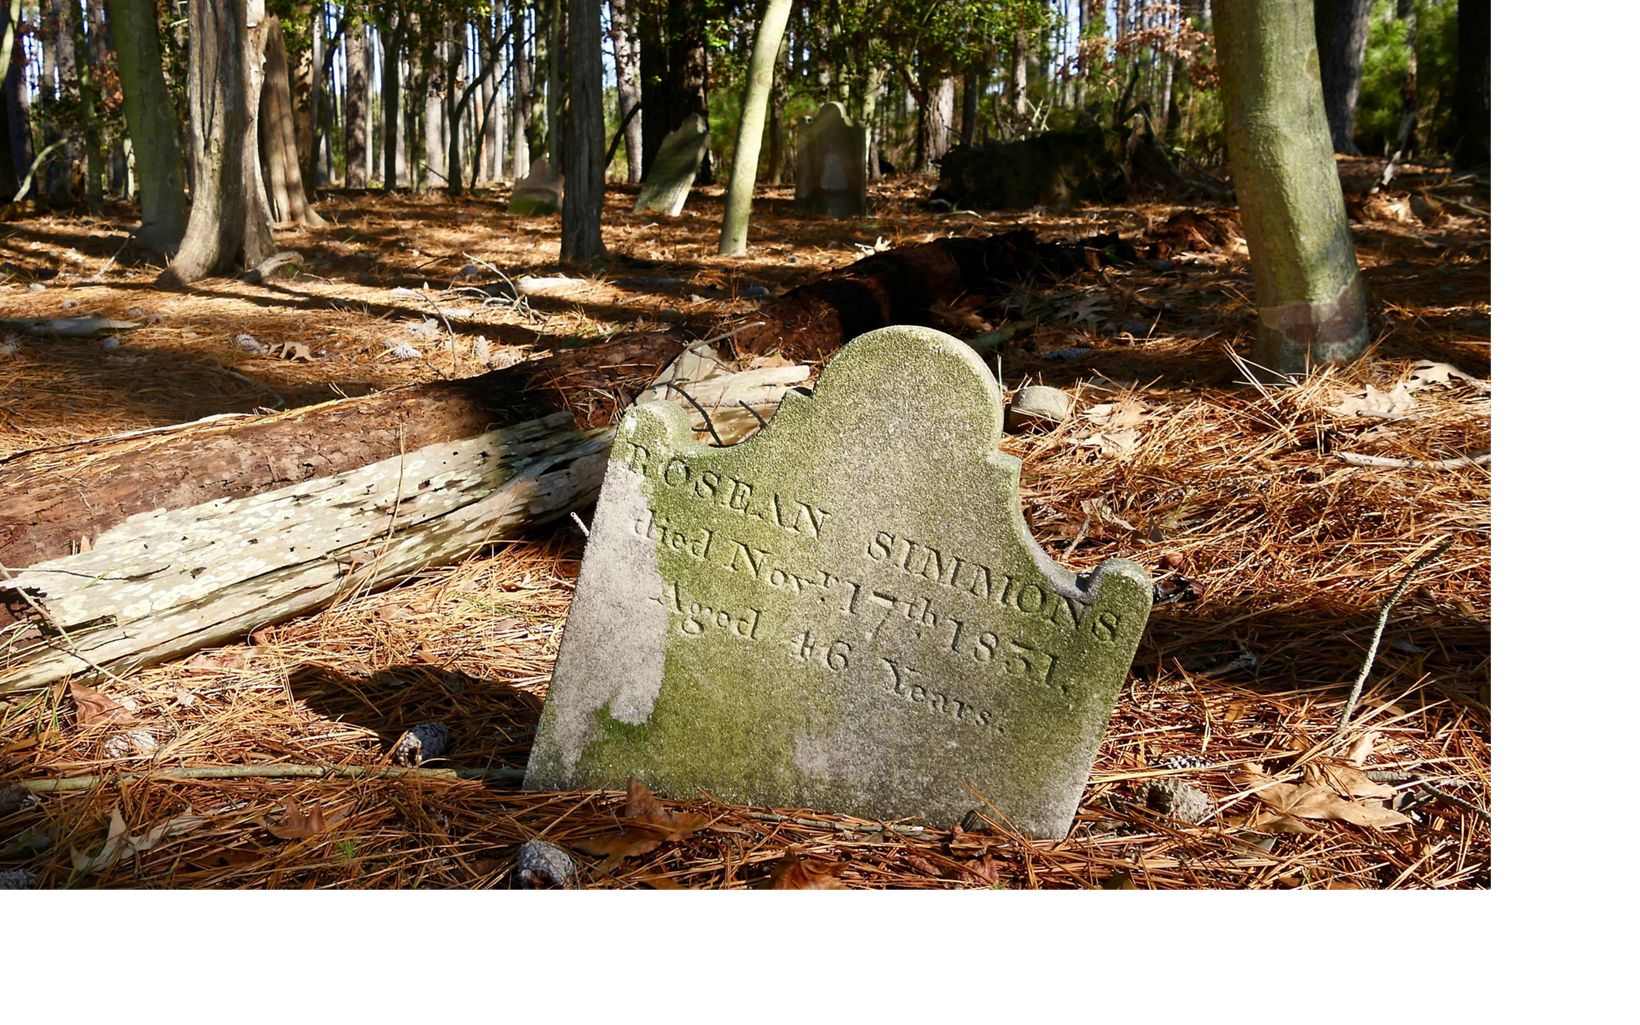 Rosean Simmons died Nov. 17, 1831. Though the cemetery may be lost to ravages of time and rising waters, knowledge of the place and those buried there will be preserved.